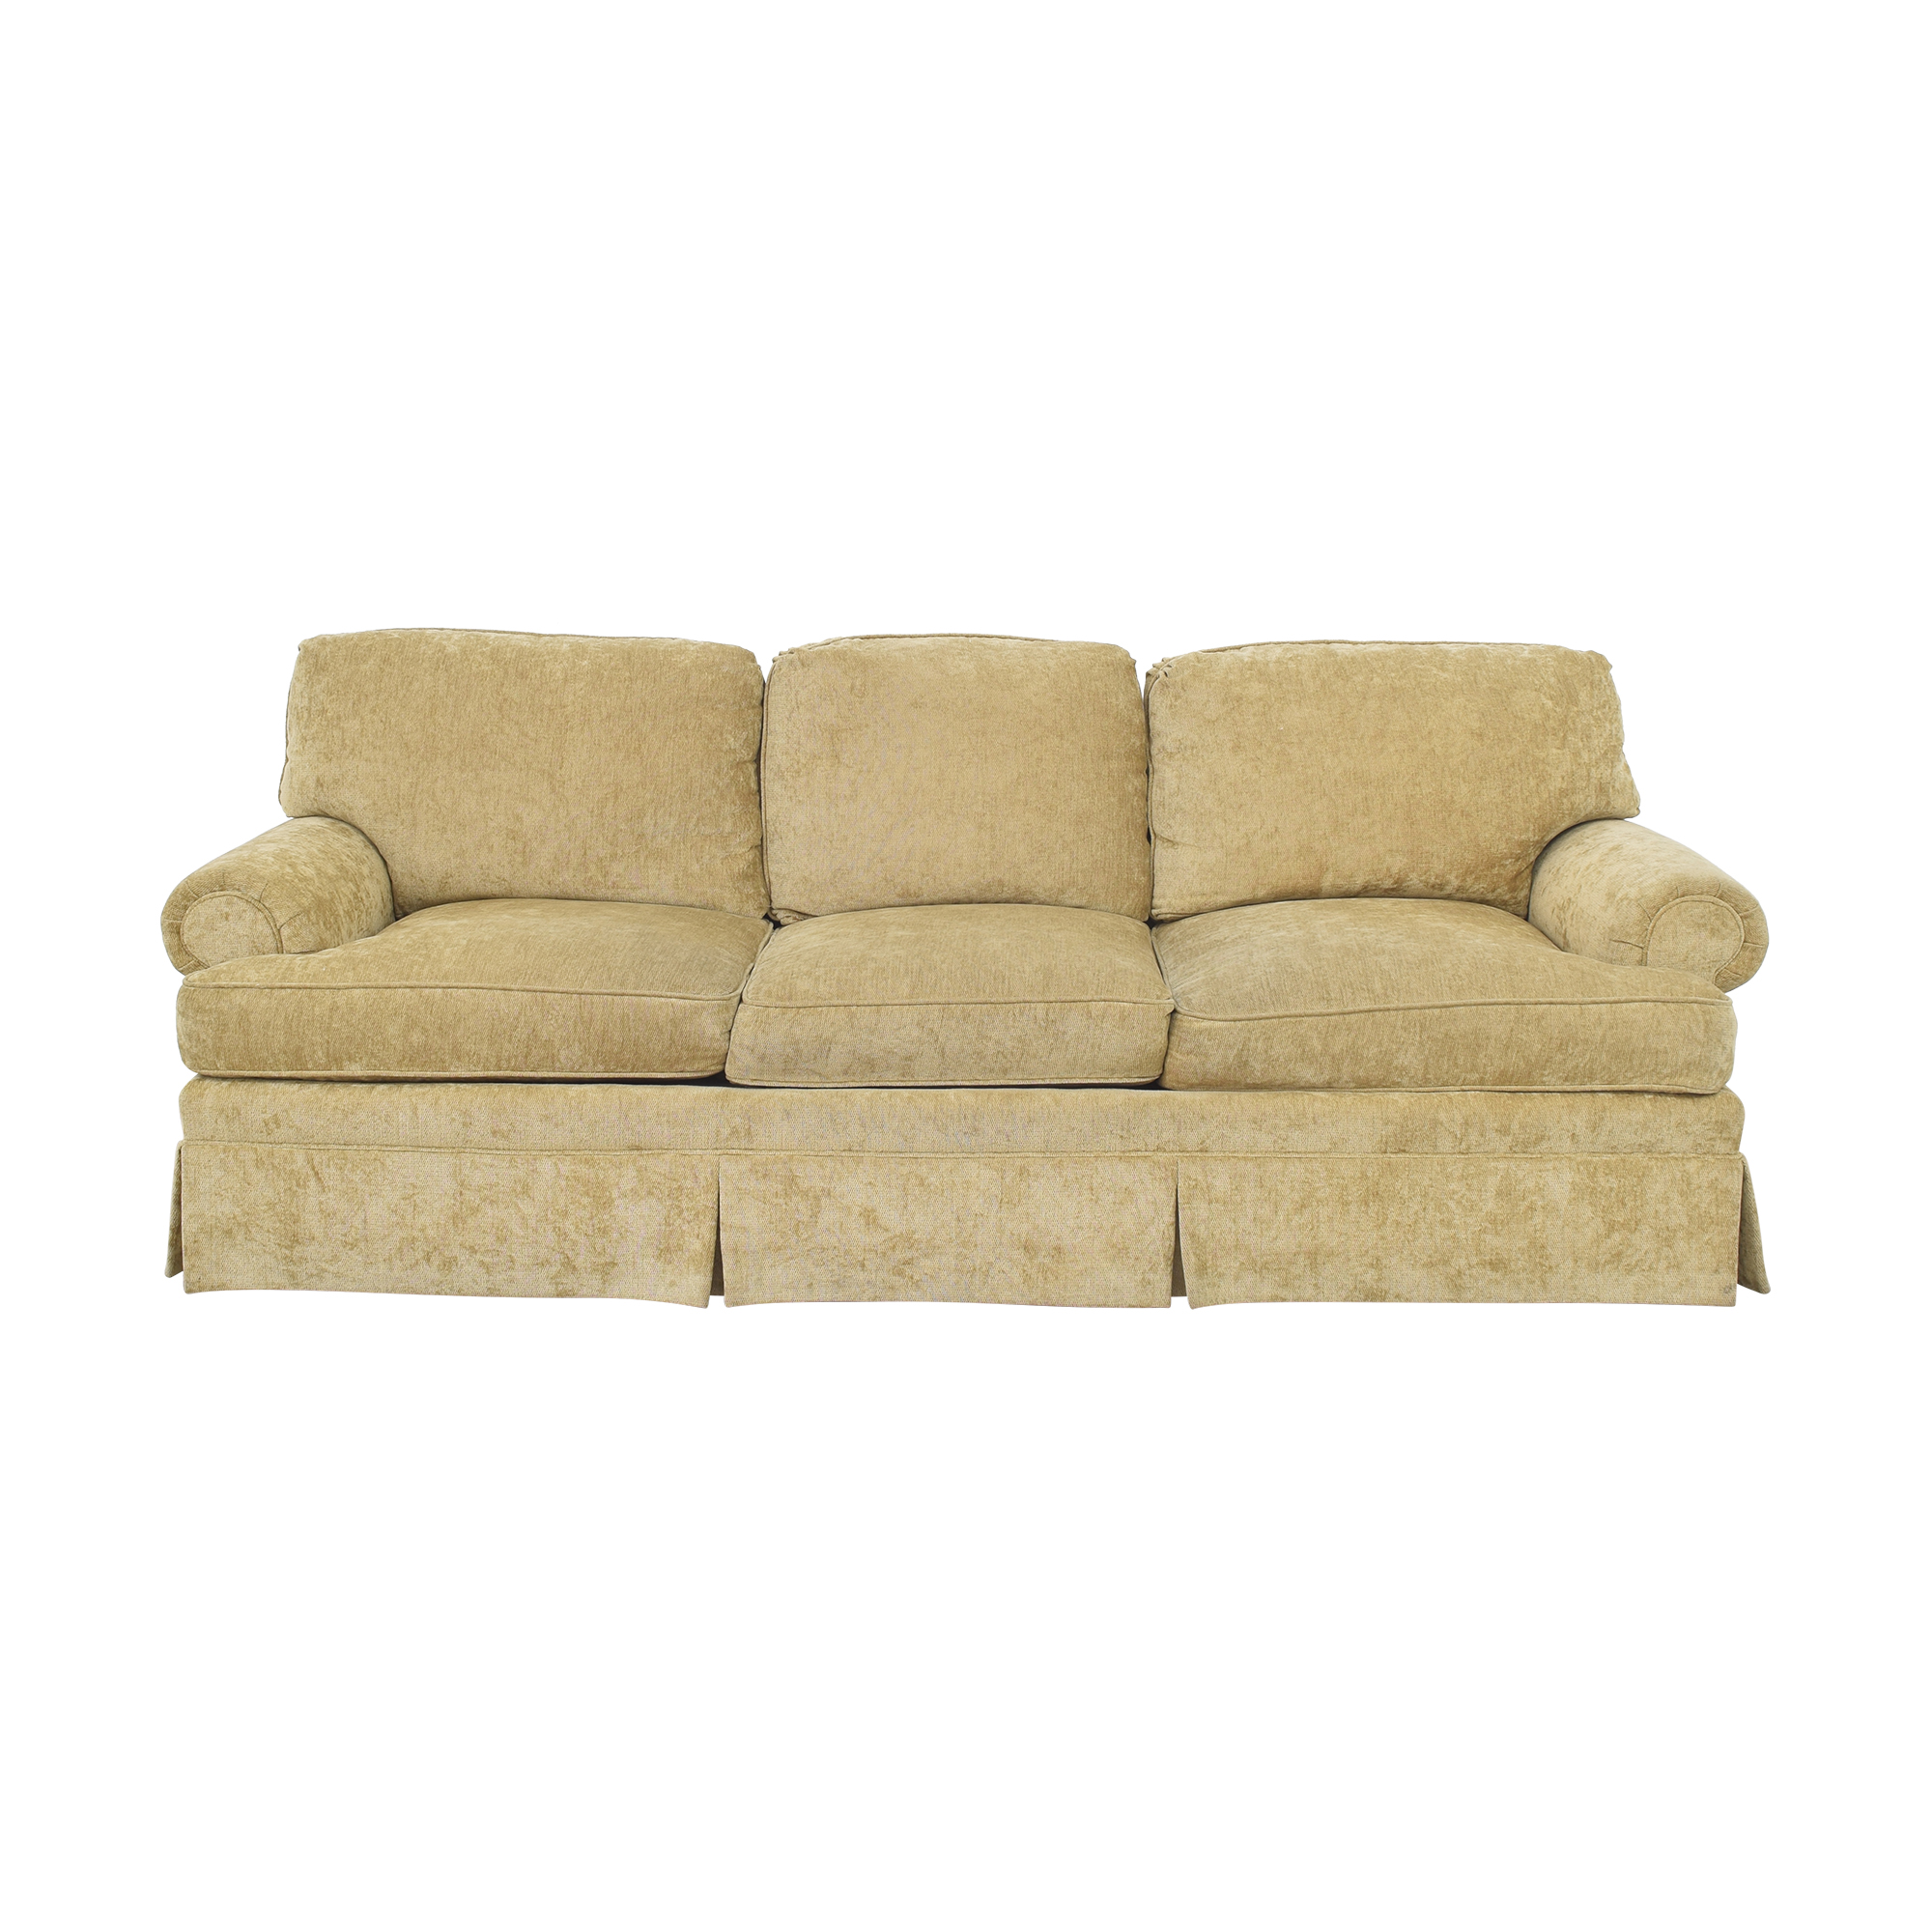 Century Furniture Century Furniture Roll Arm Skirted Sofa tan